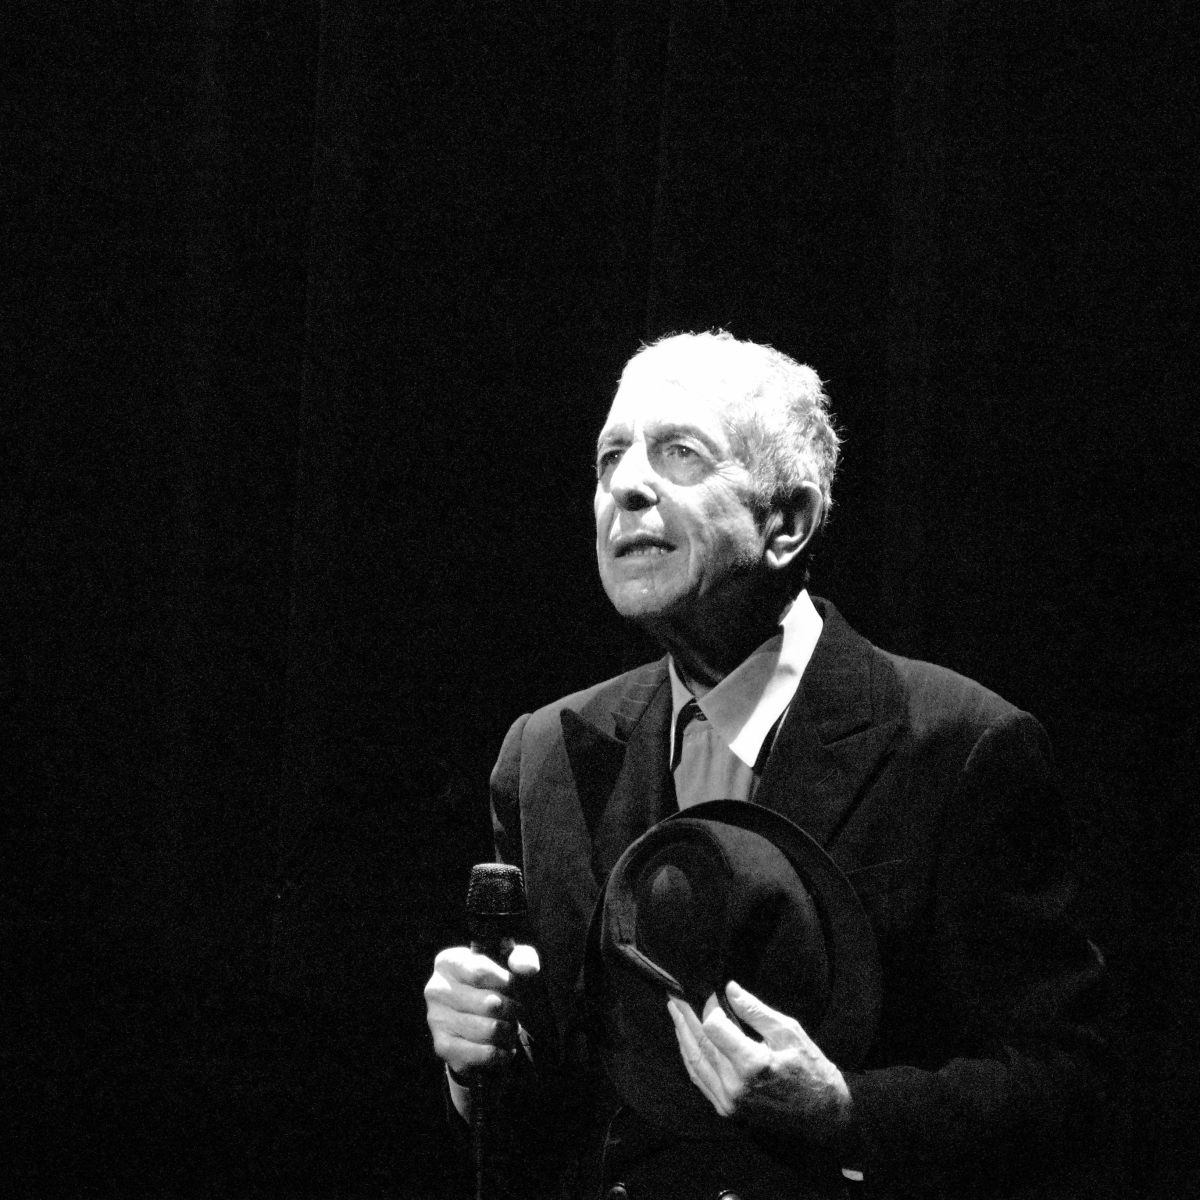 Leonard Cohen: Canadian Songwriter, Poet and Novelist